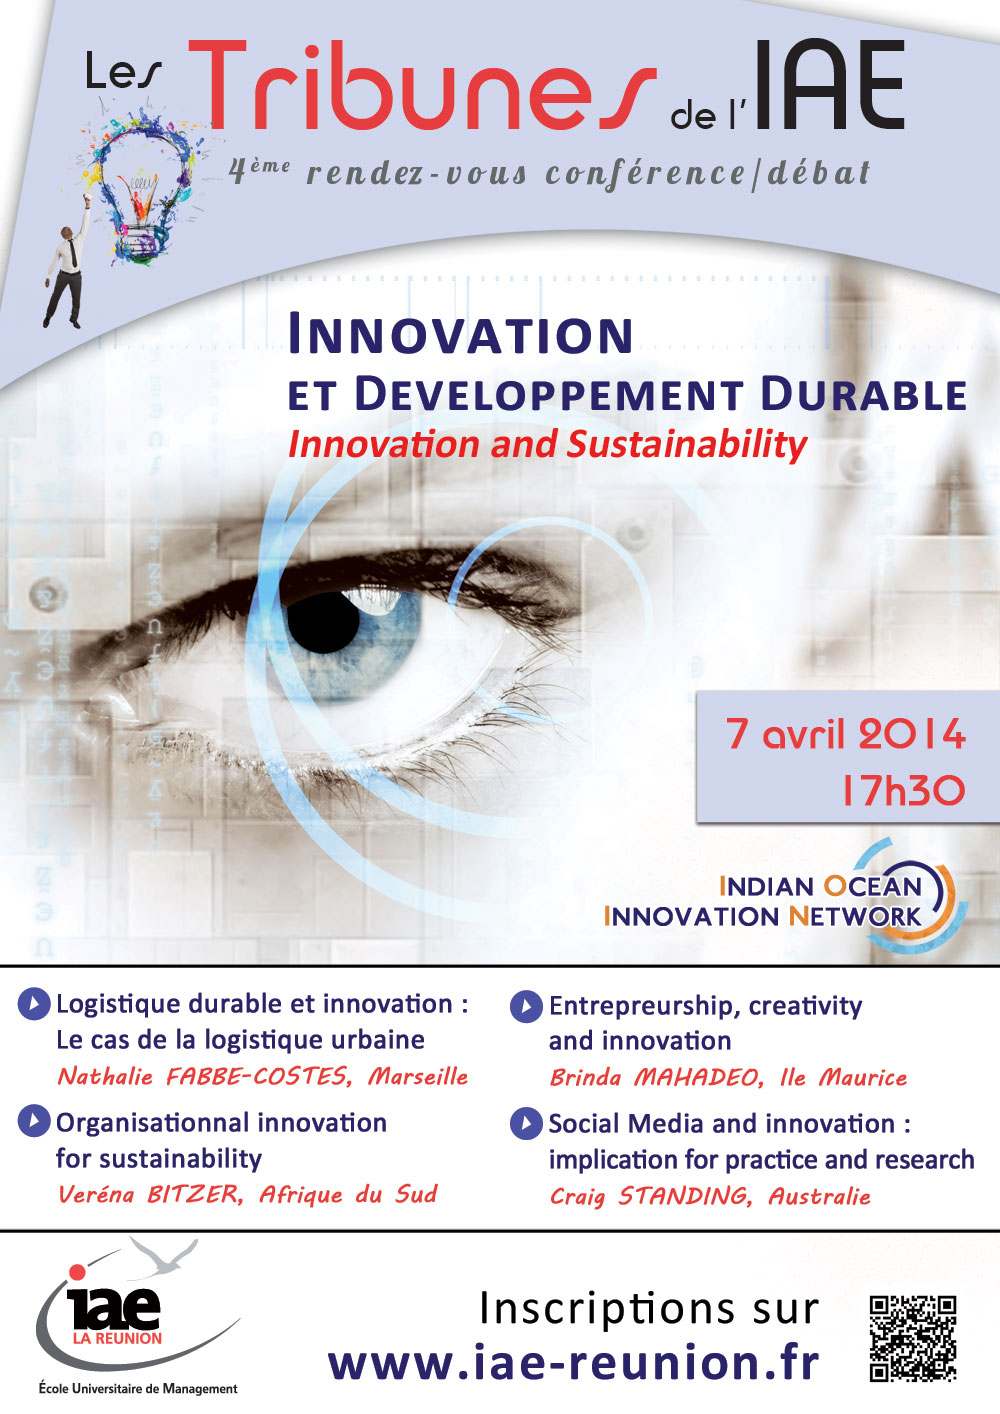 INDIAN OCEAN INNOVATION NETWORK